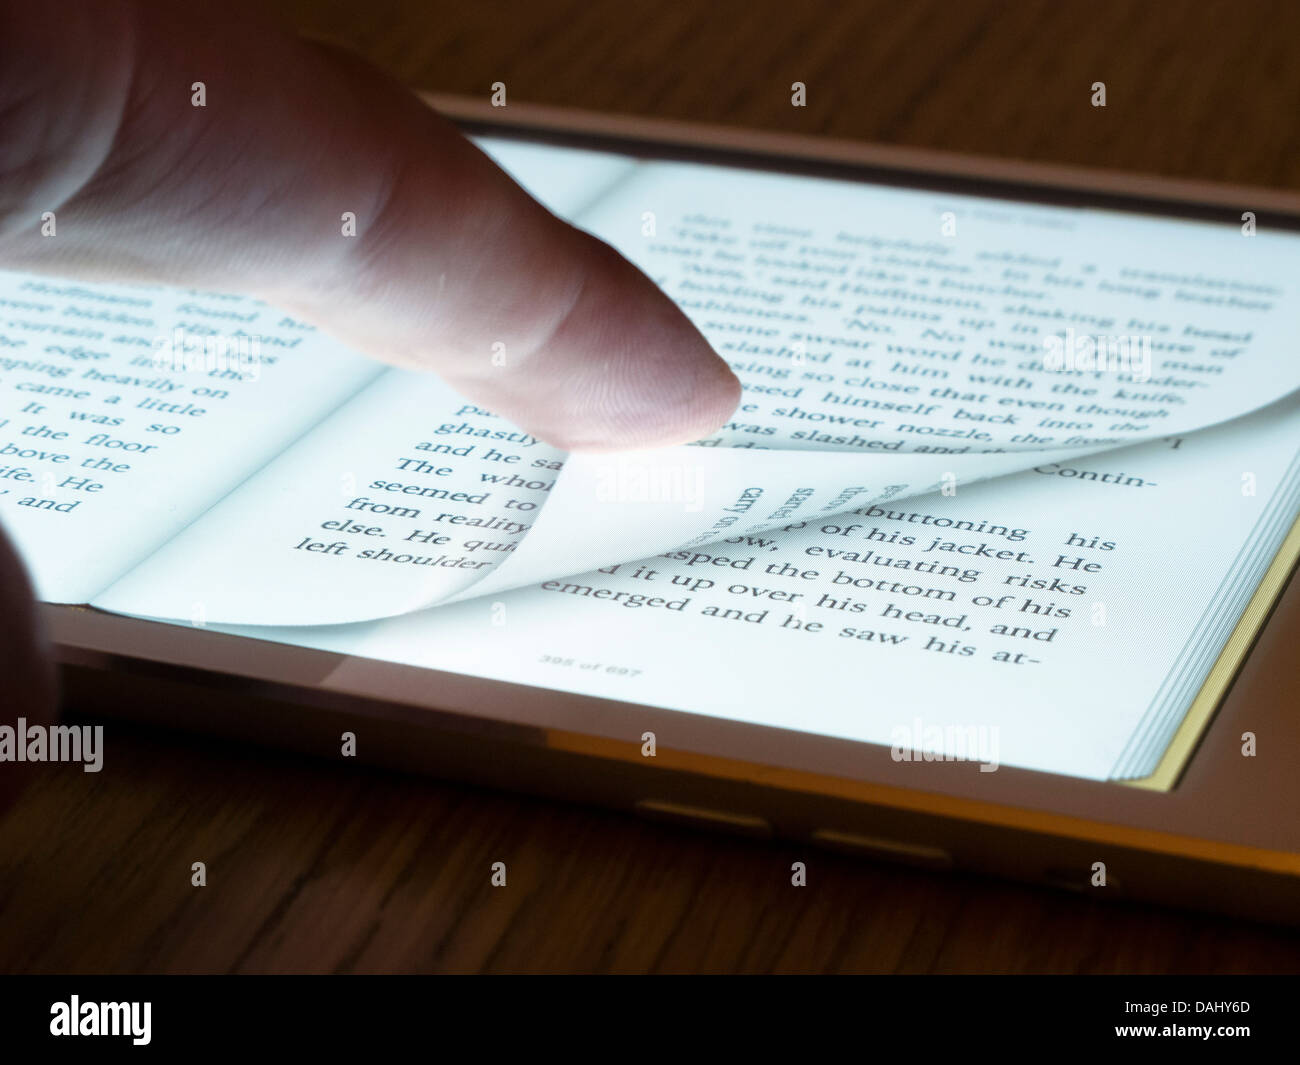 Turning page of ebook reader on an iPad mini tablet computer - Stock Image